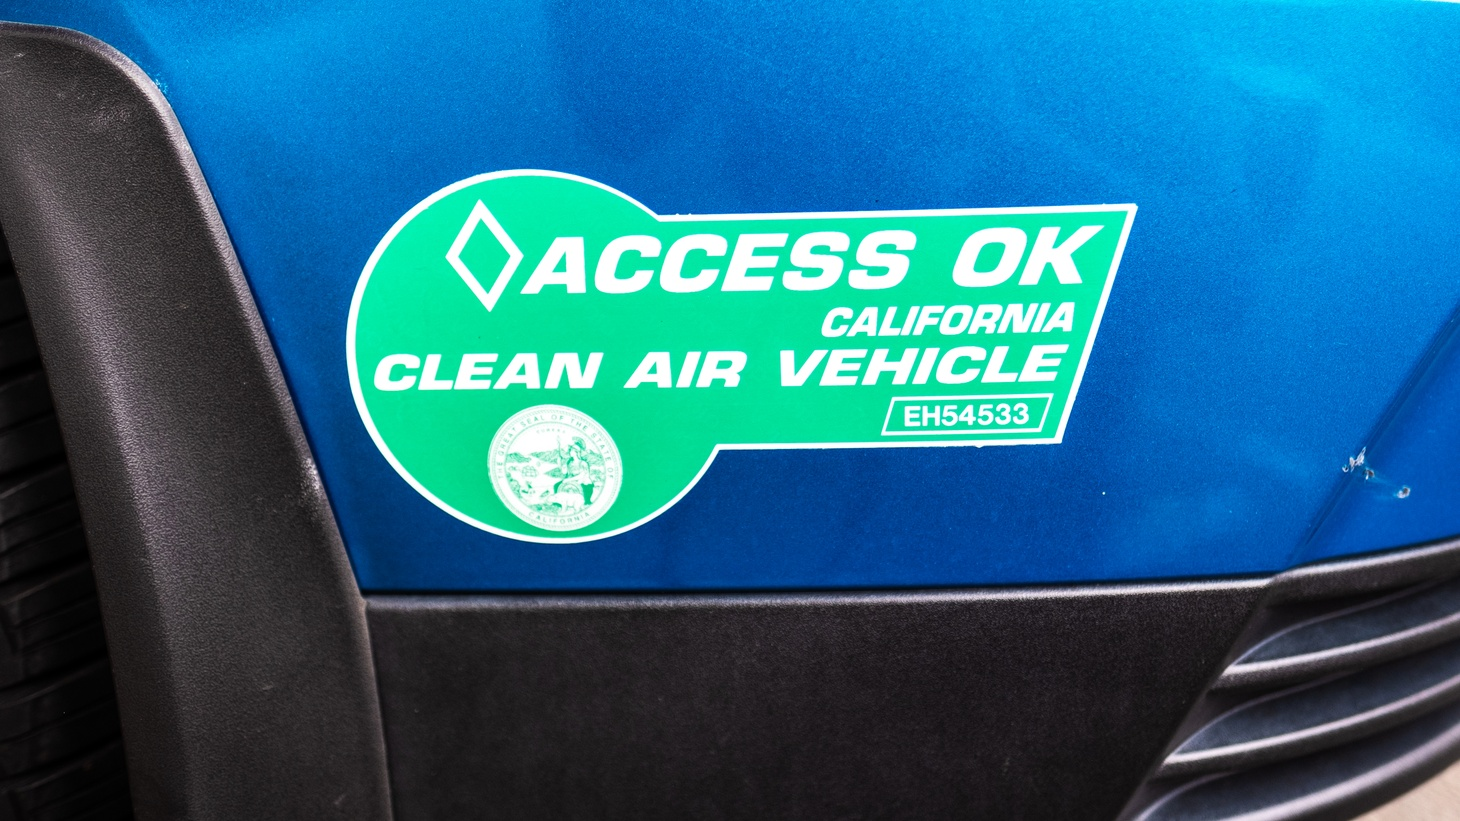 California clean air vehicle sticker in downtown LA.